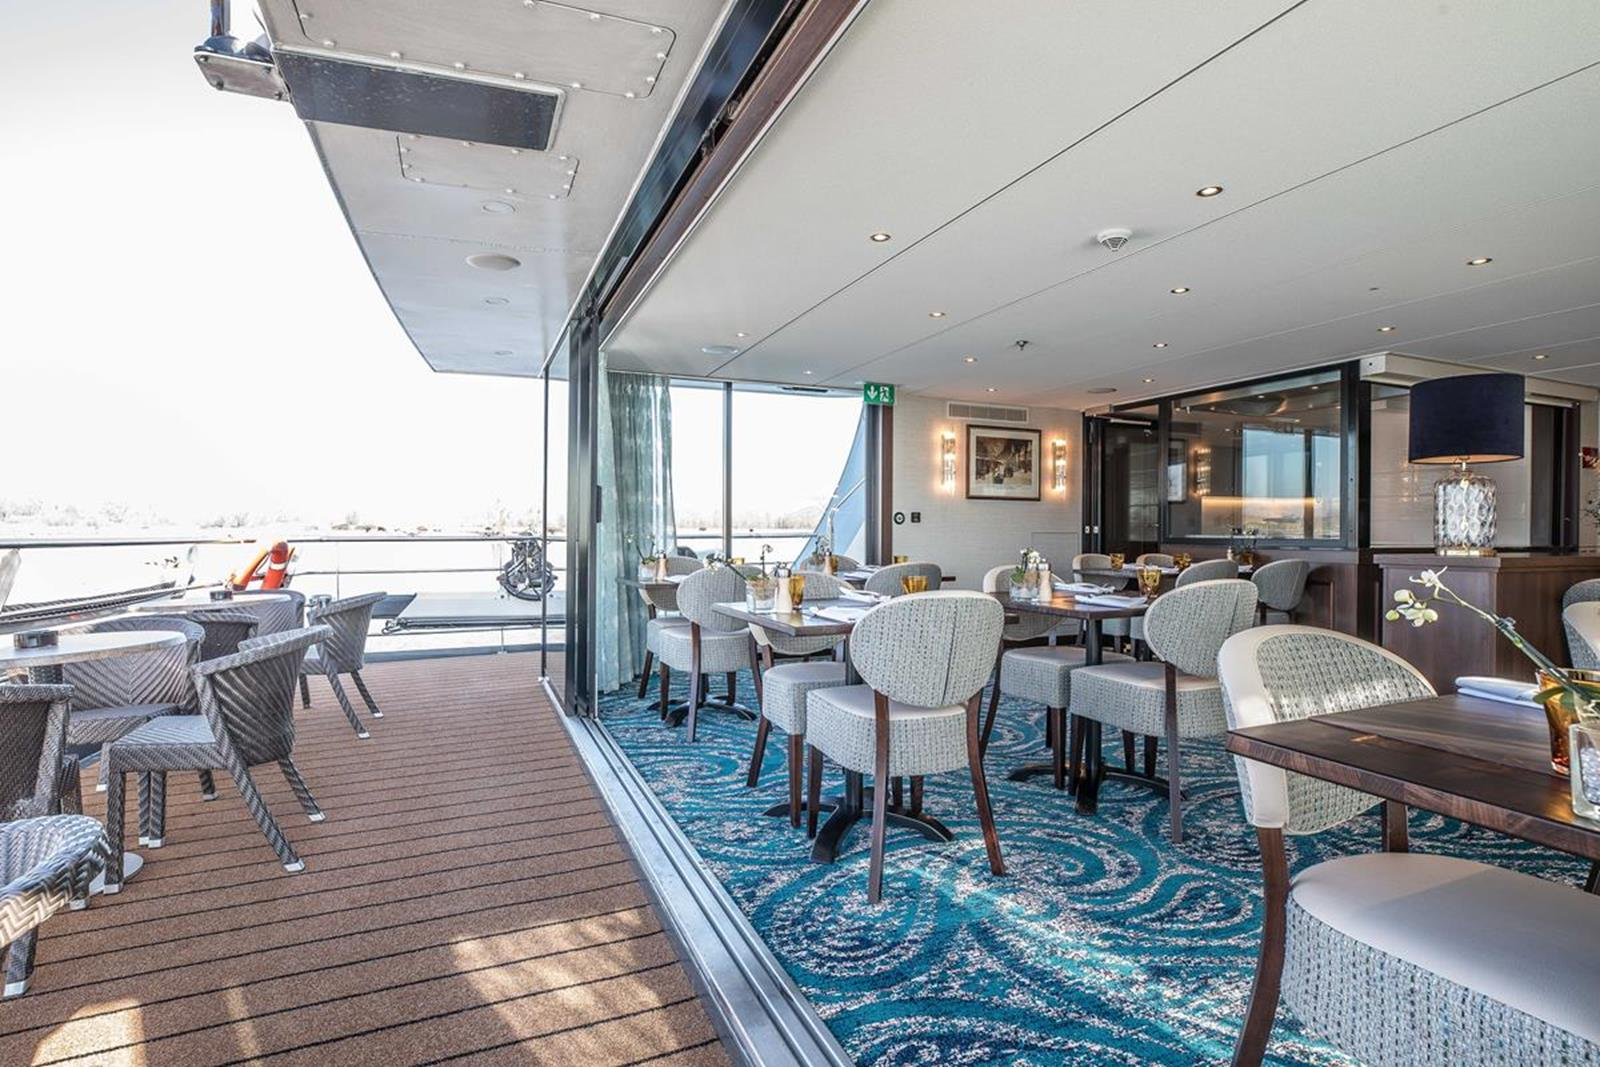 MS George Eliot bistro 2 - Courtesy of Riviera River Cruises